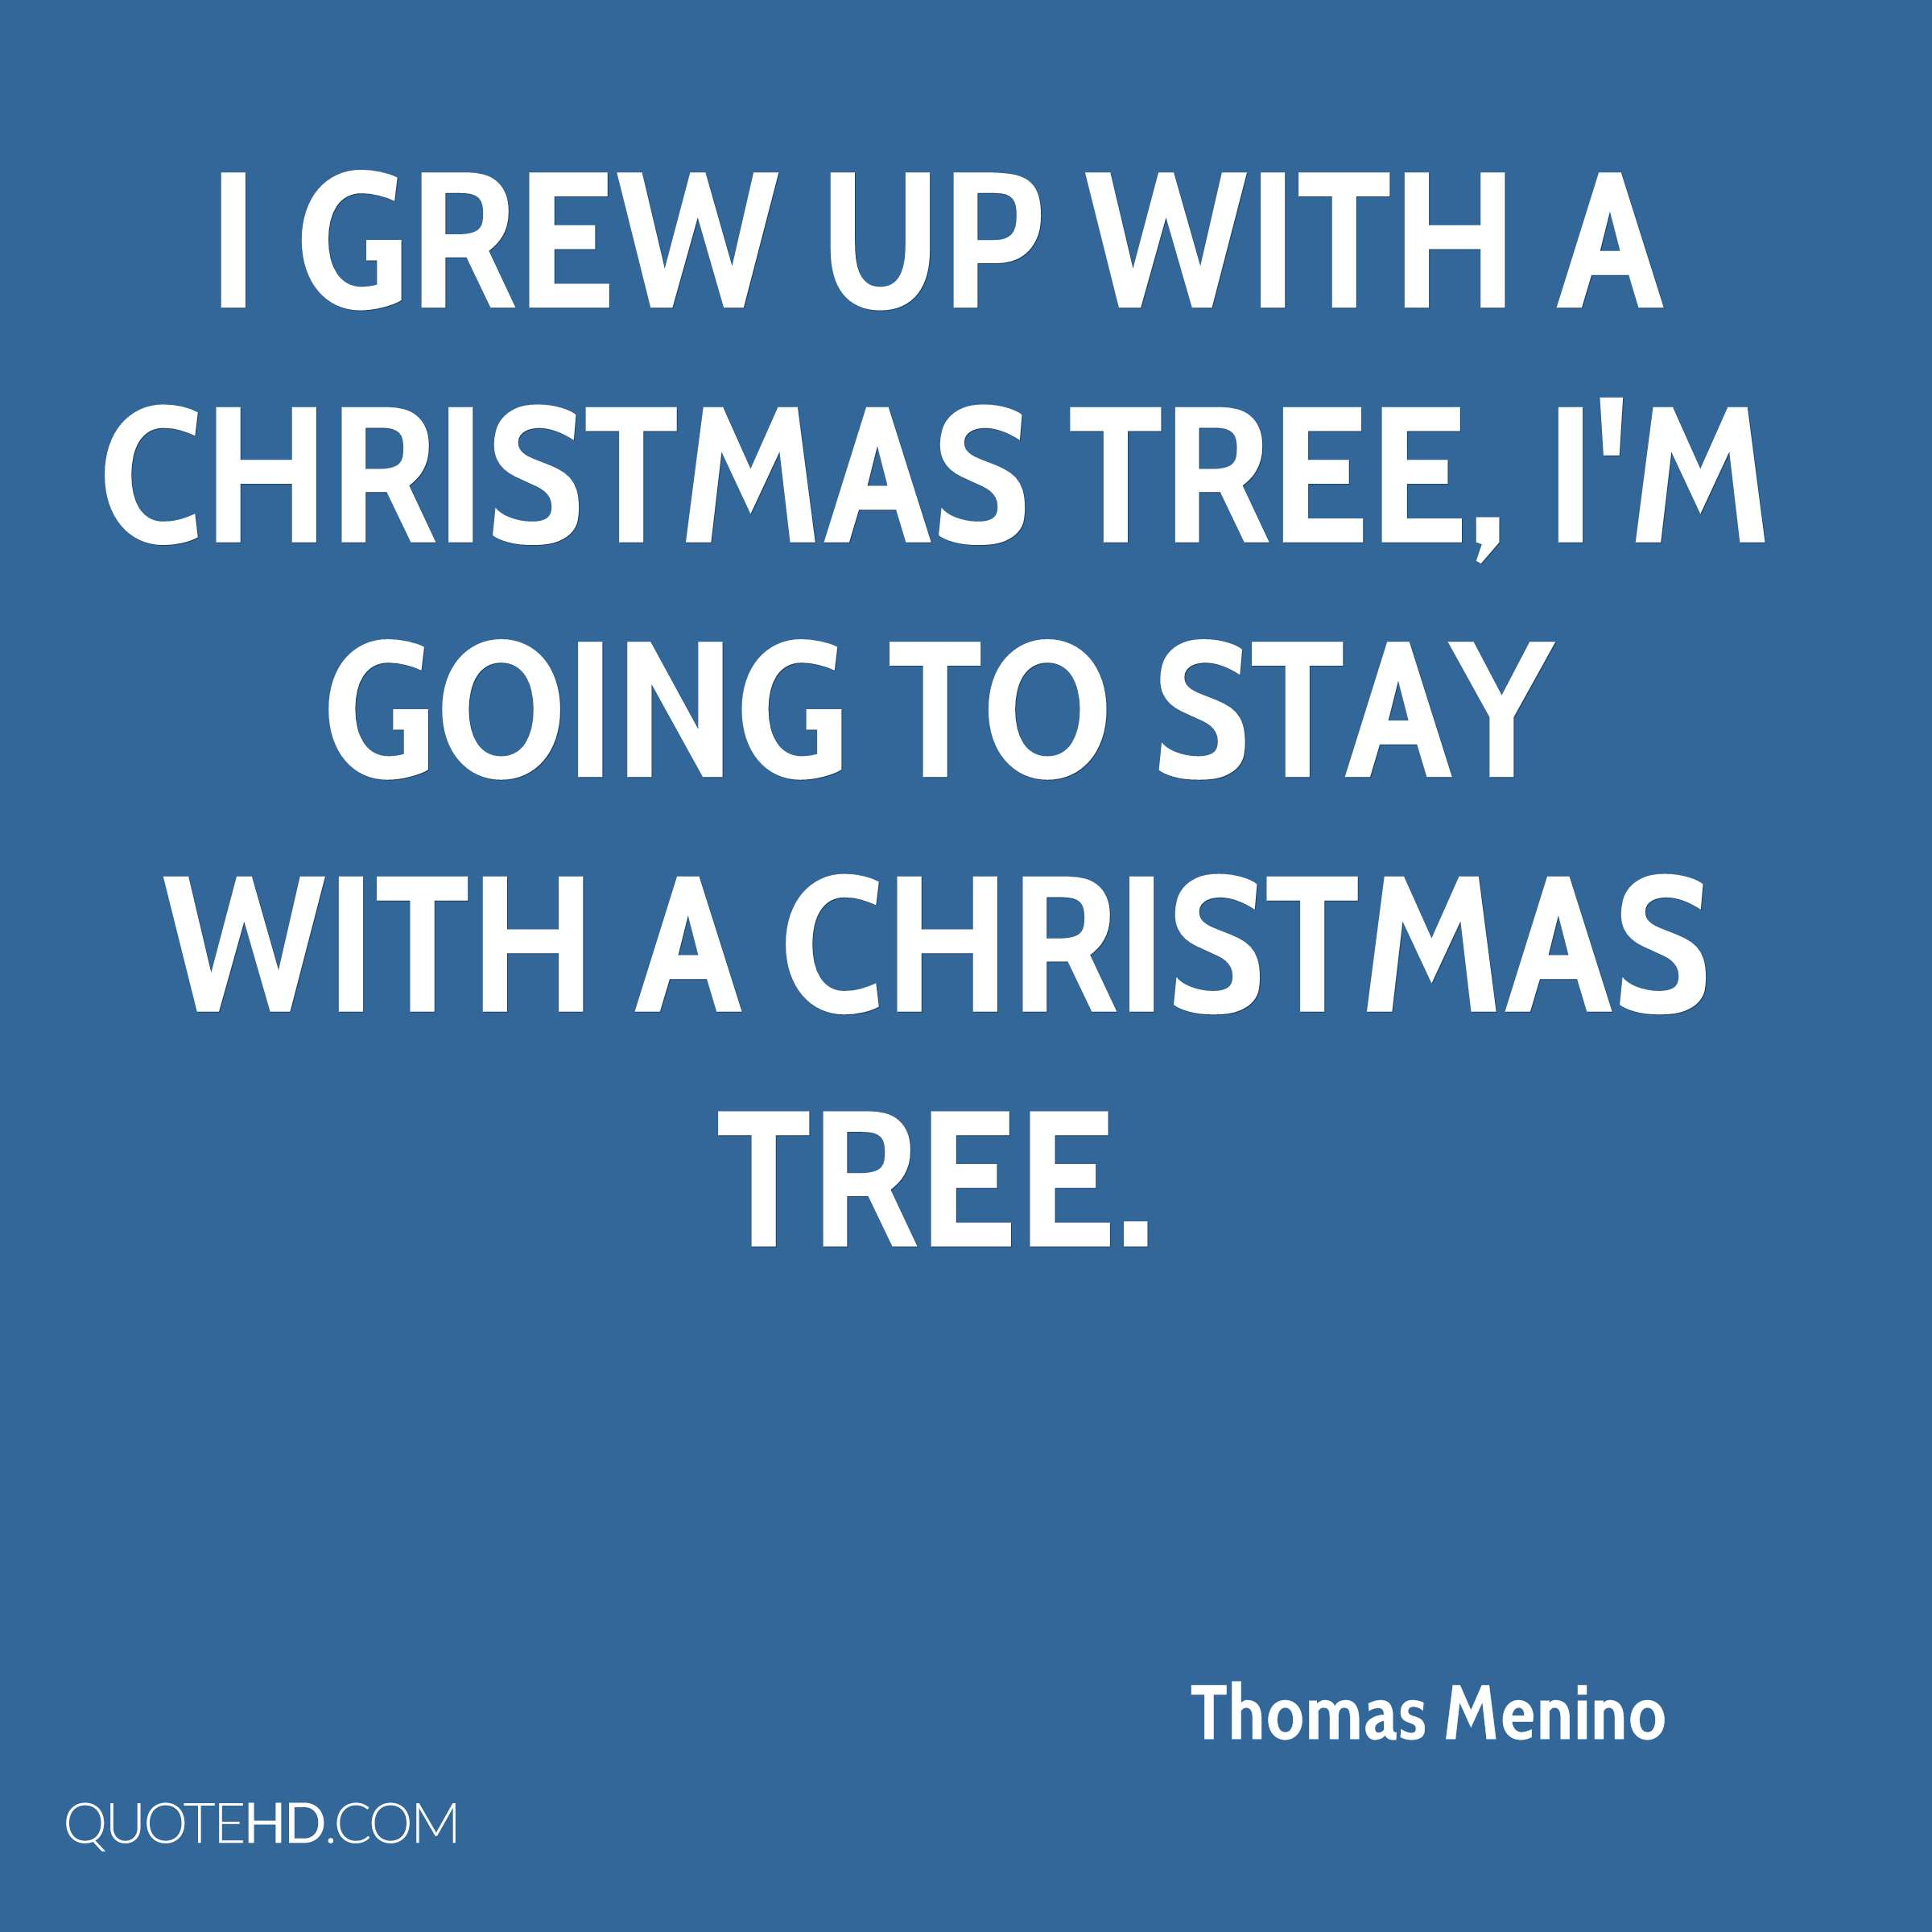 I grew up with a Christmas tree, I'm going to stay with a Christmas tree.